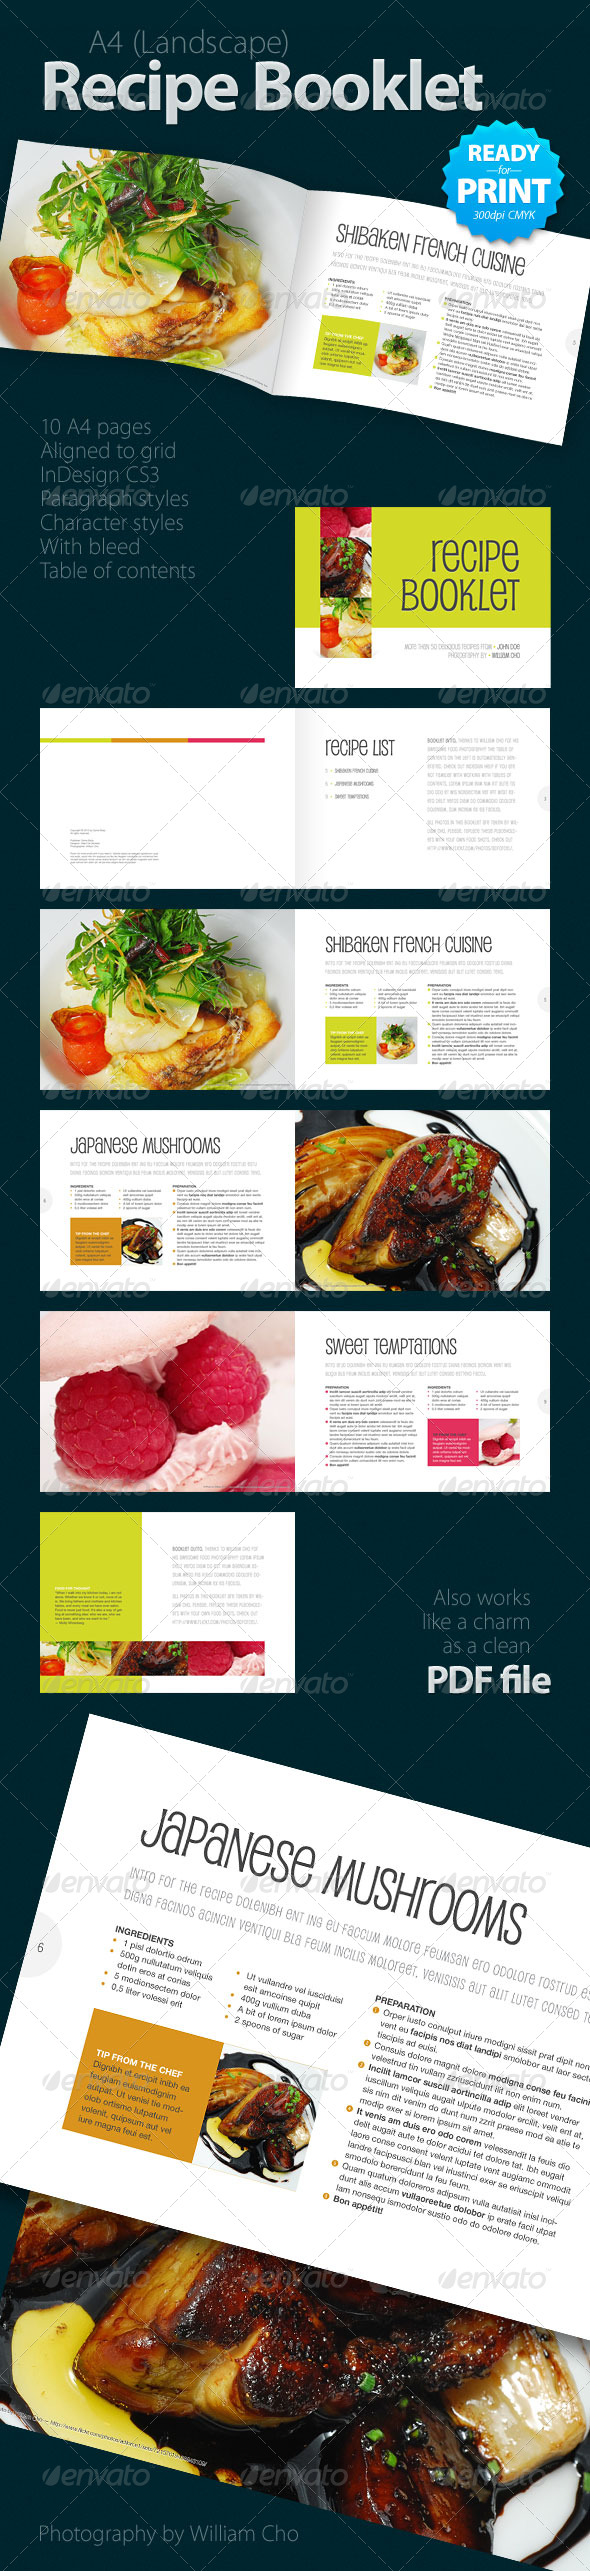 recipe creative booklets design brochures pamphlet